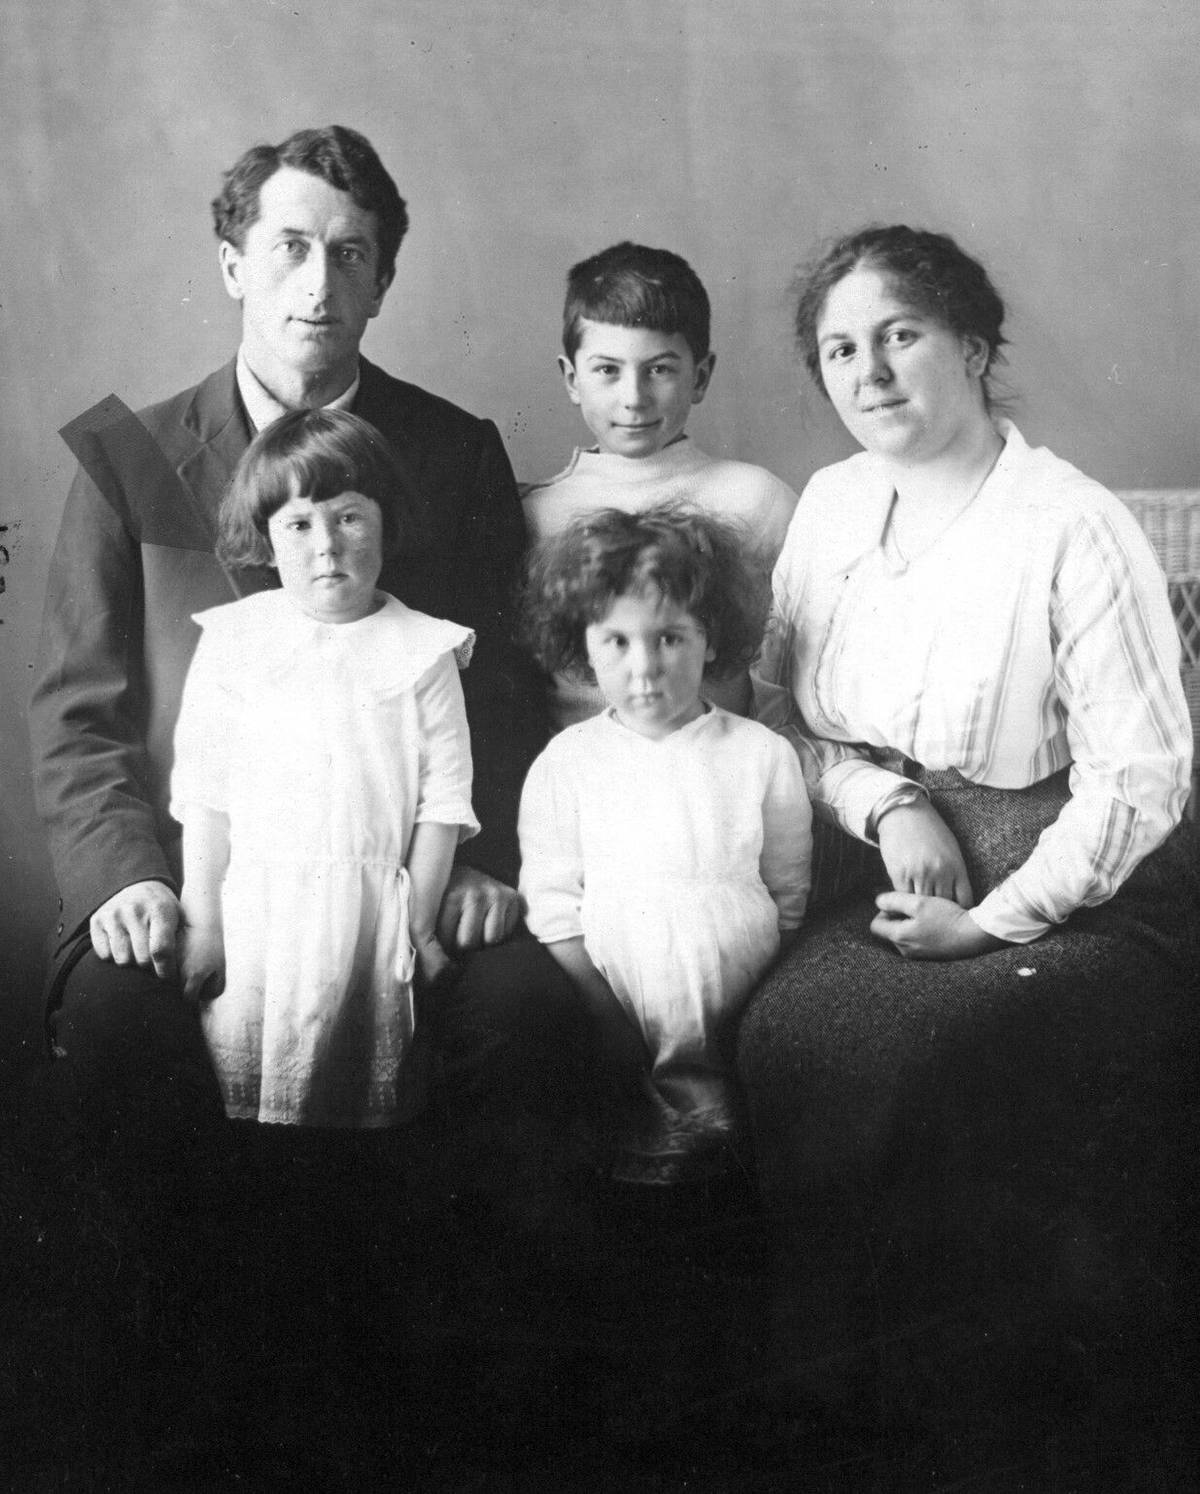 Mary (Hughes) Foote with her parents and siblings a century ago. She's standing in front of her father. (family photo)